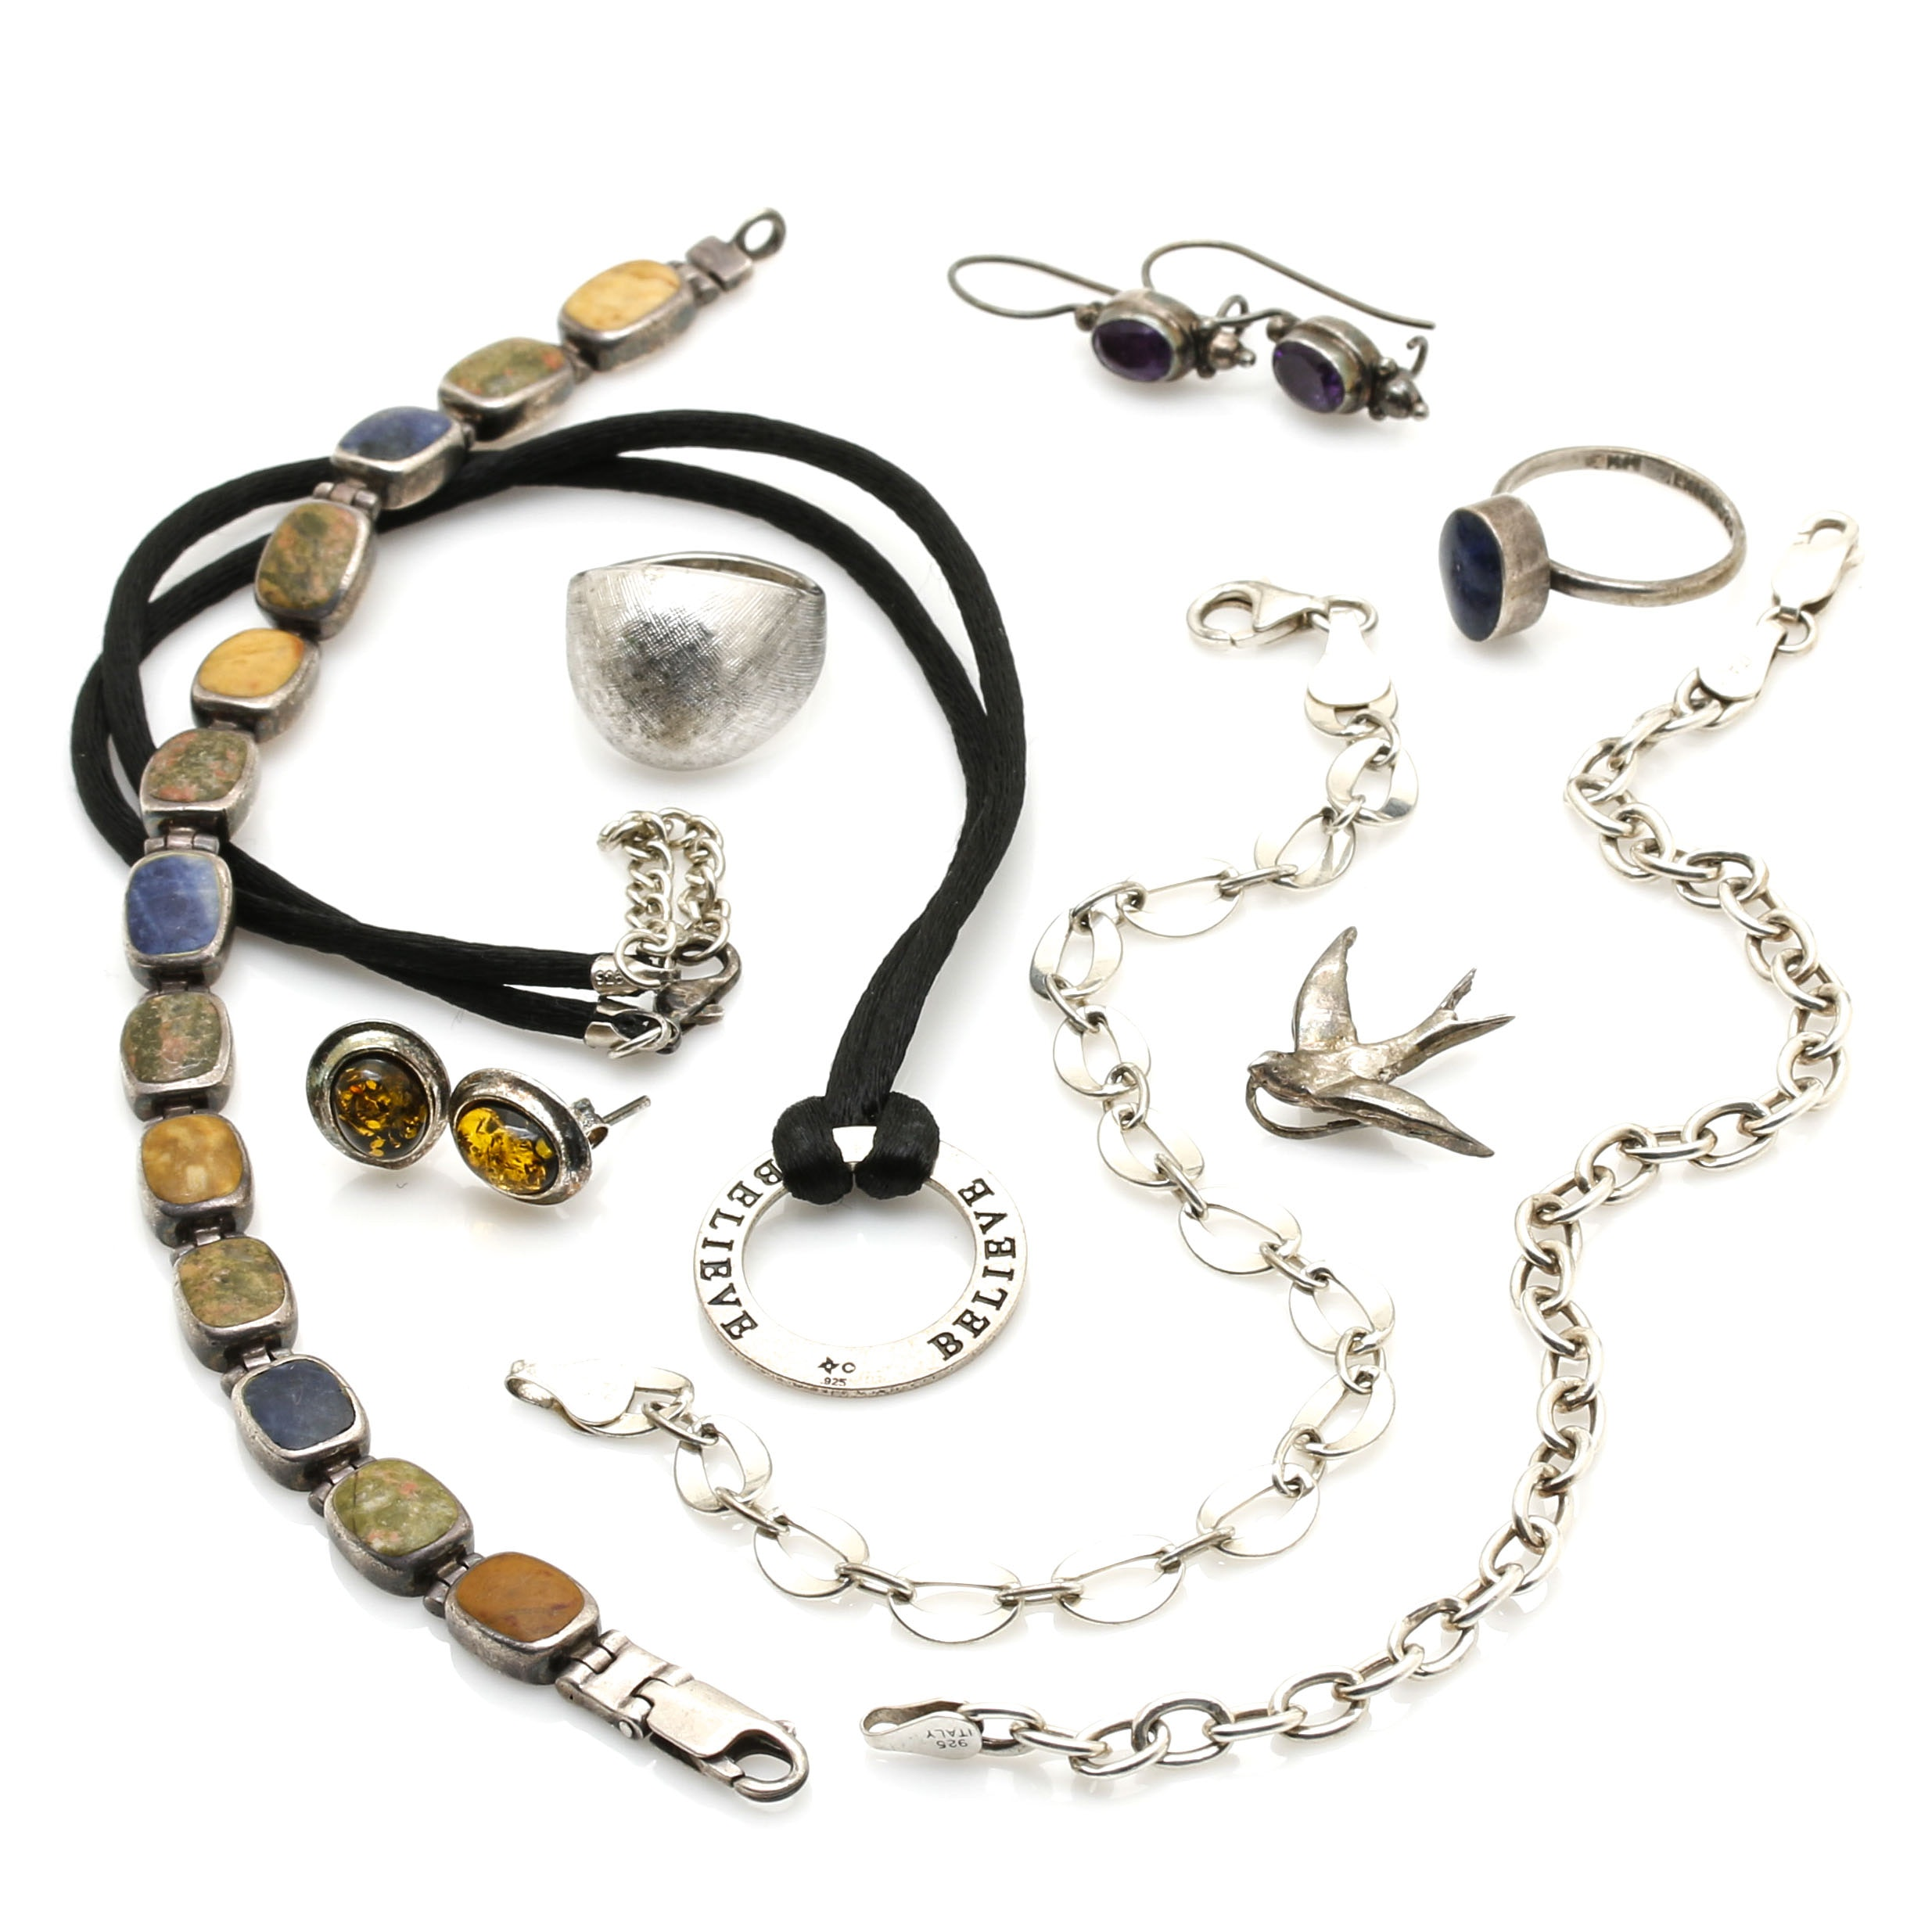 Assorted Sterling Silver Jewelry With Gemstones